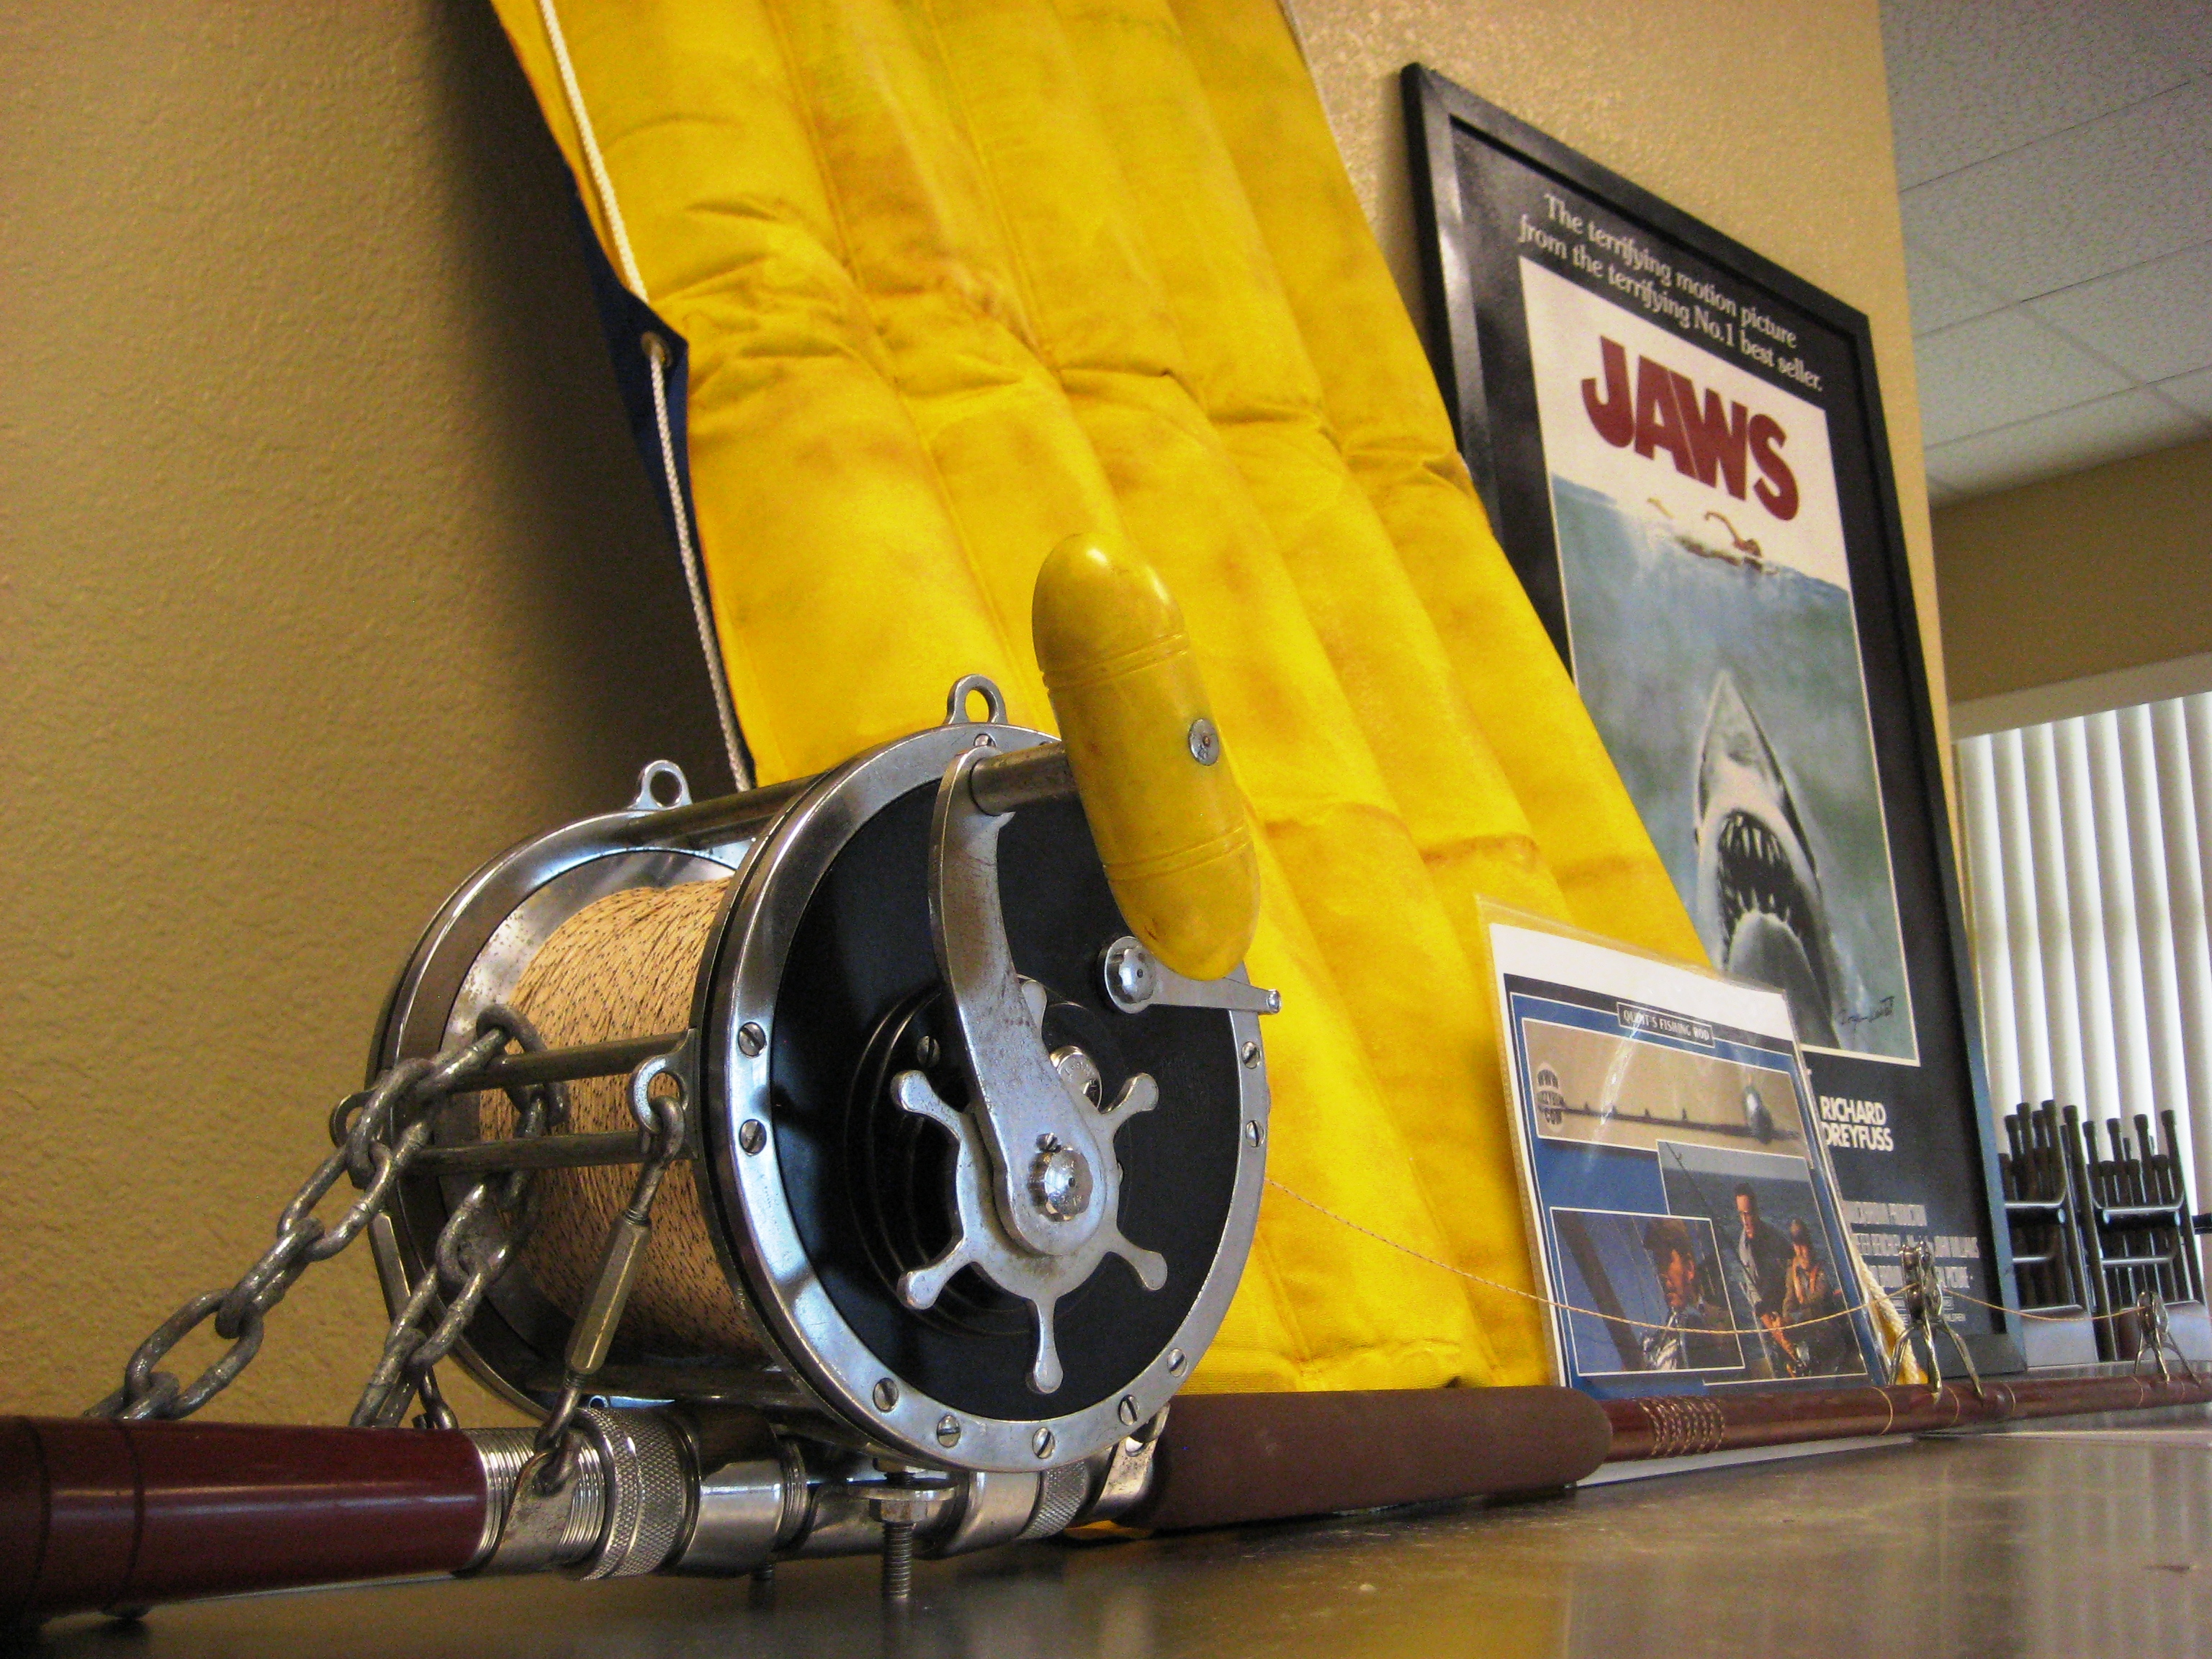 Quint's Fishing Rod from the Movie Jaws